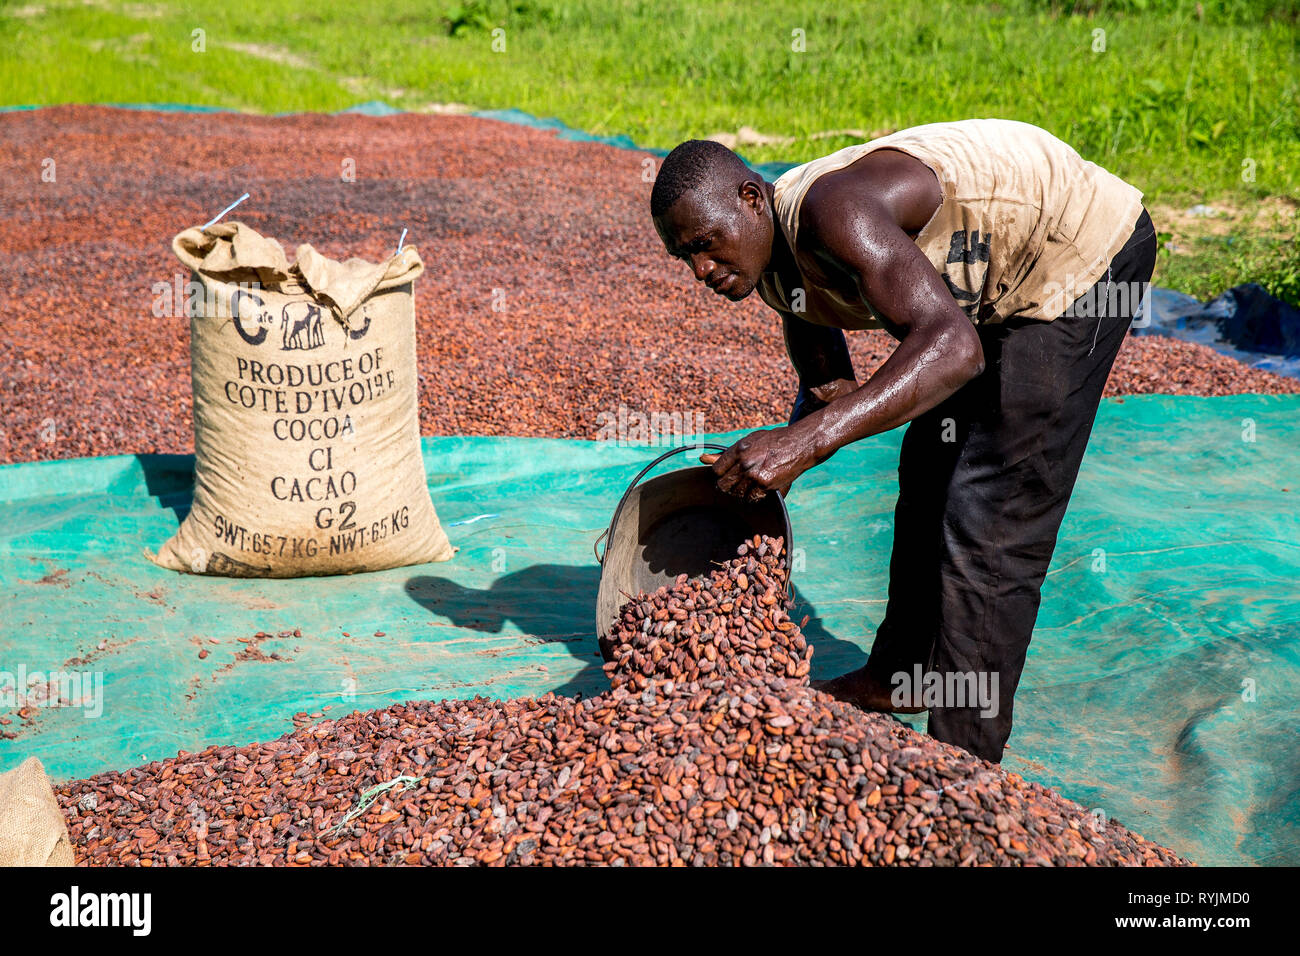 Cocoa bean drying in Agboville, Ivory Coast. - Stock Image